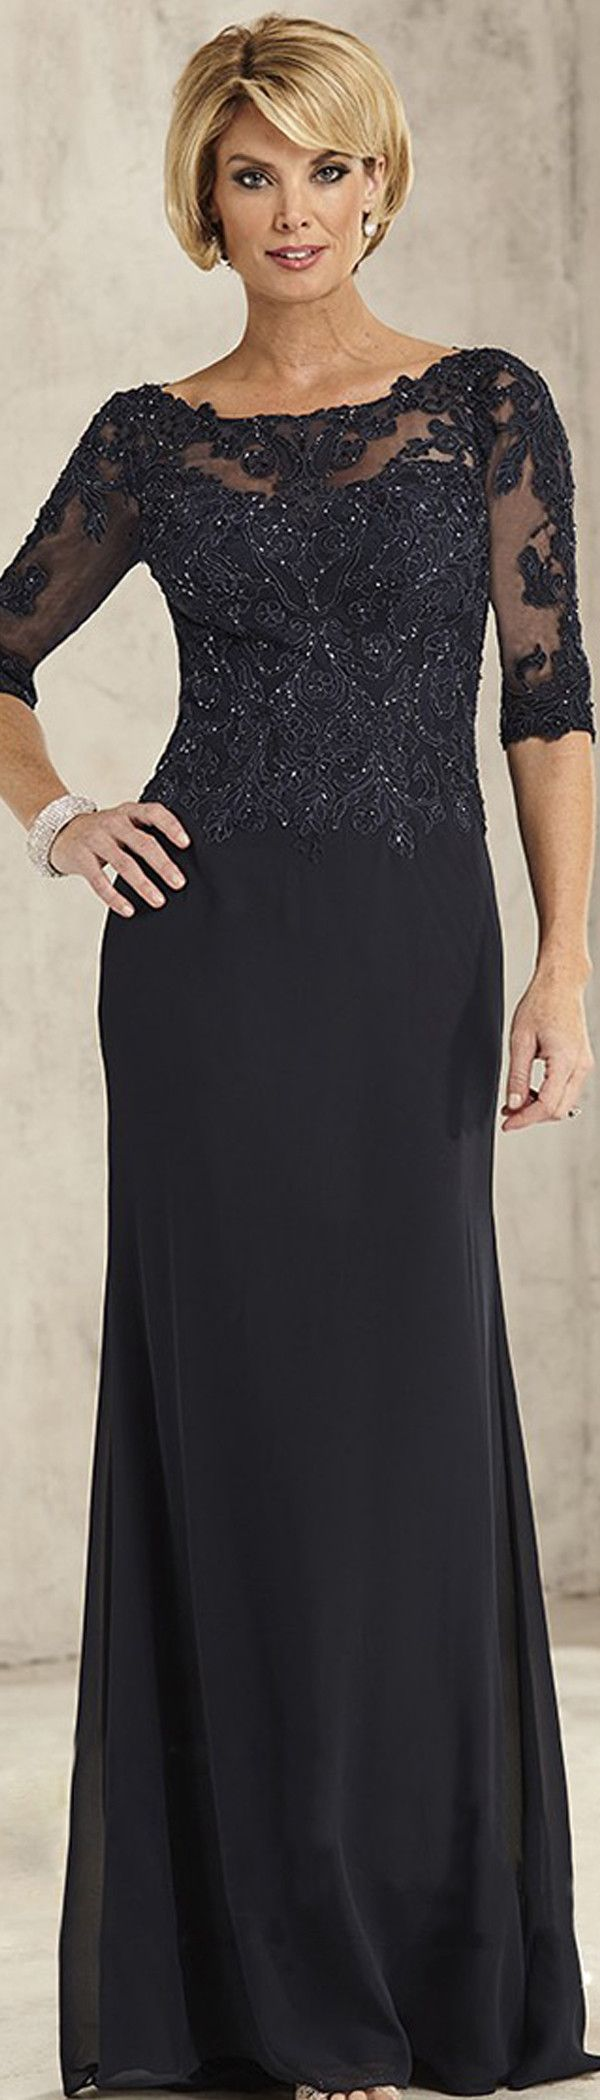 Wonderful Chiffon Bateau Neckline Sheath Mother Of The Bride Dresses With Beaded Lace Appliques